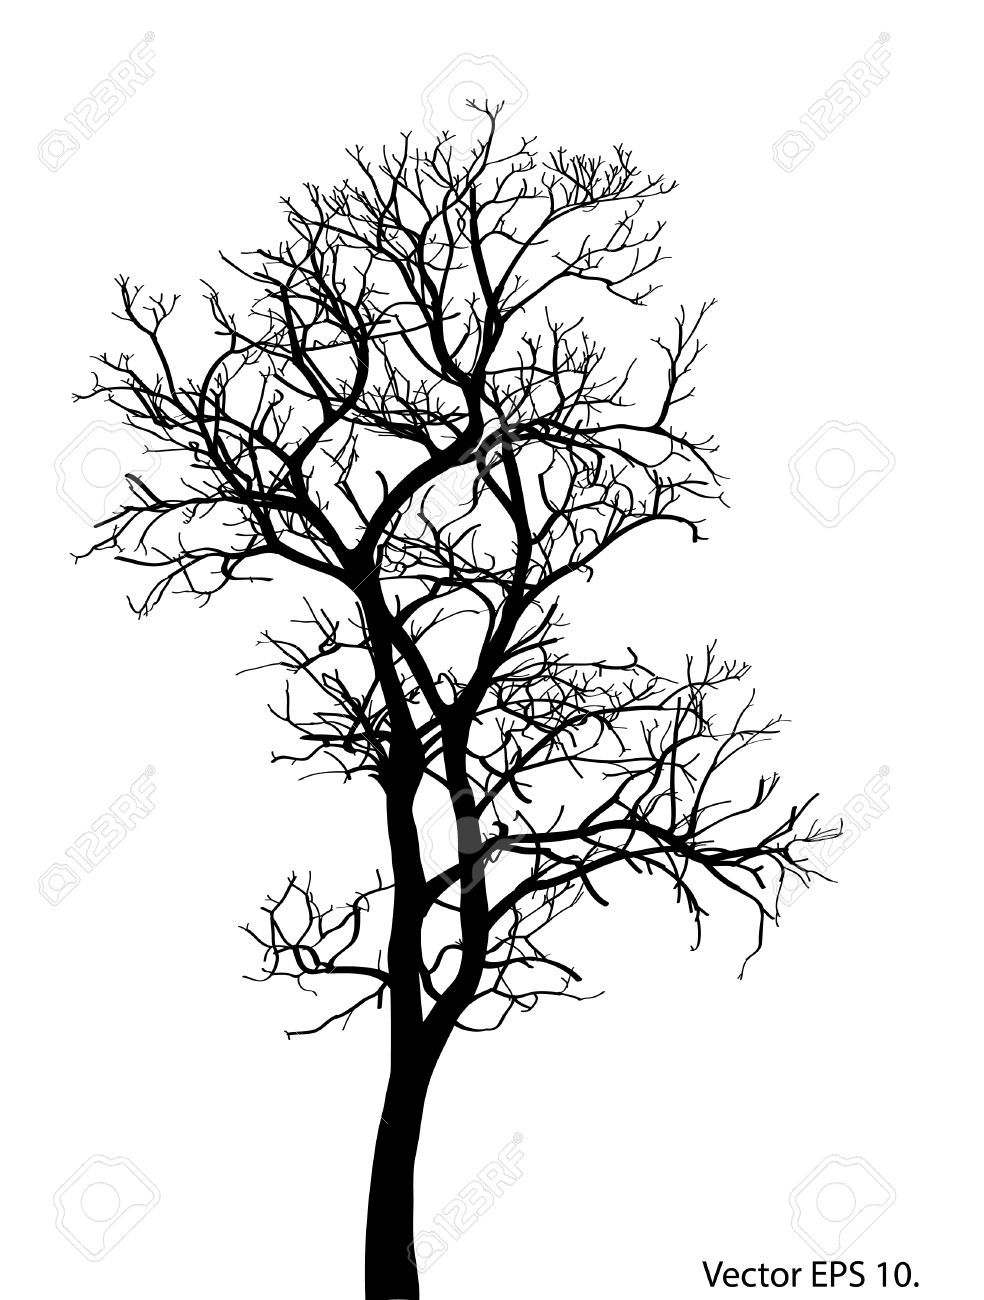 dead tree without leaves vector illustration sketched eps 10 rh 123rf com dead tree vector image dead tree silhouette vector